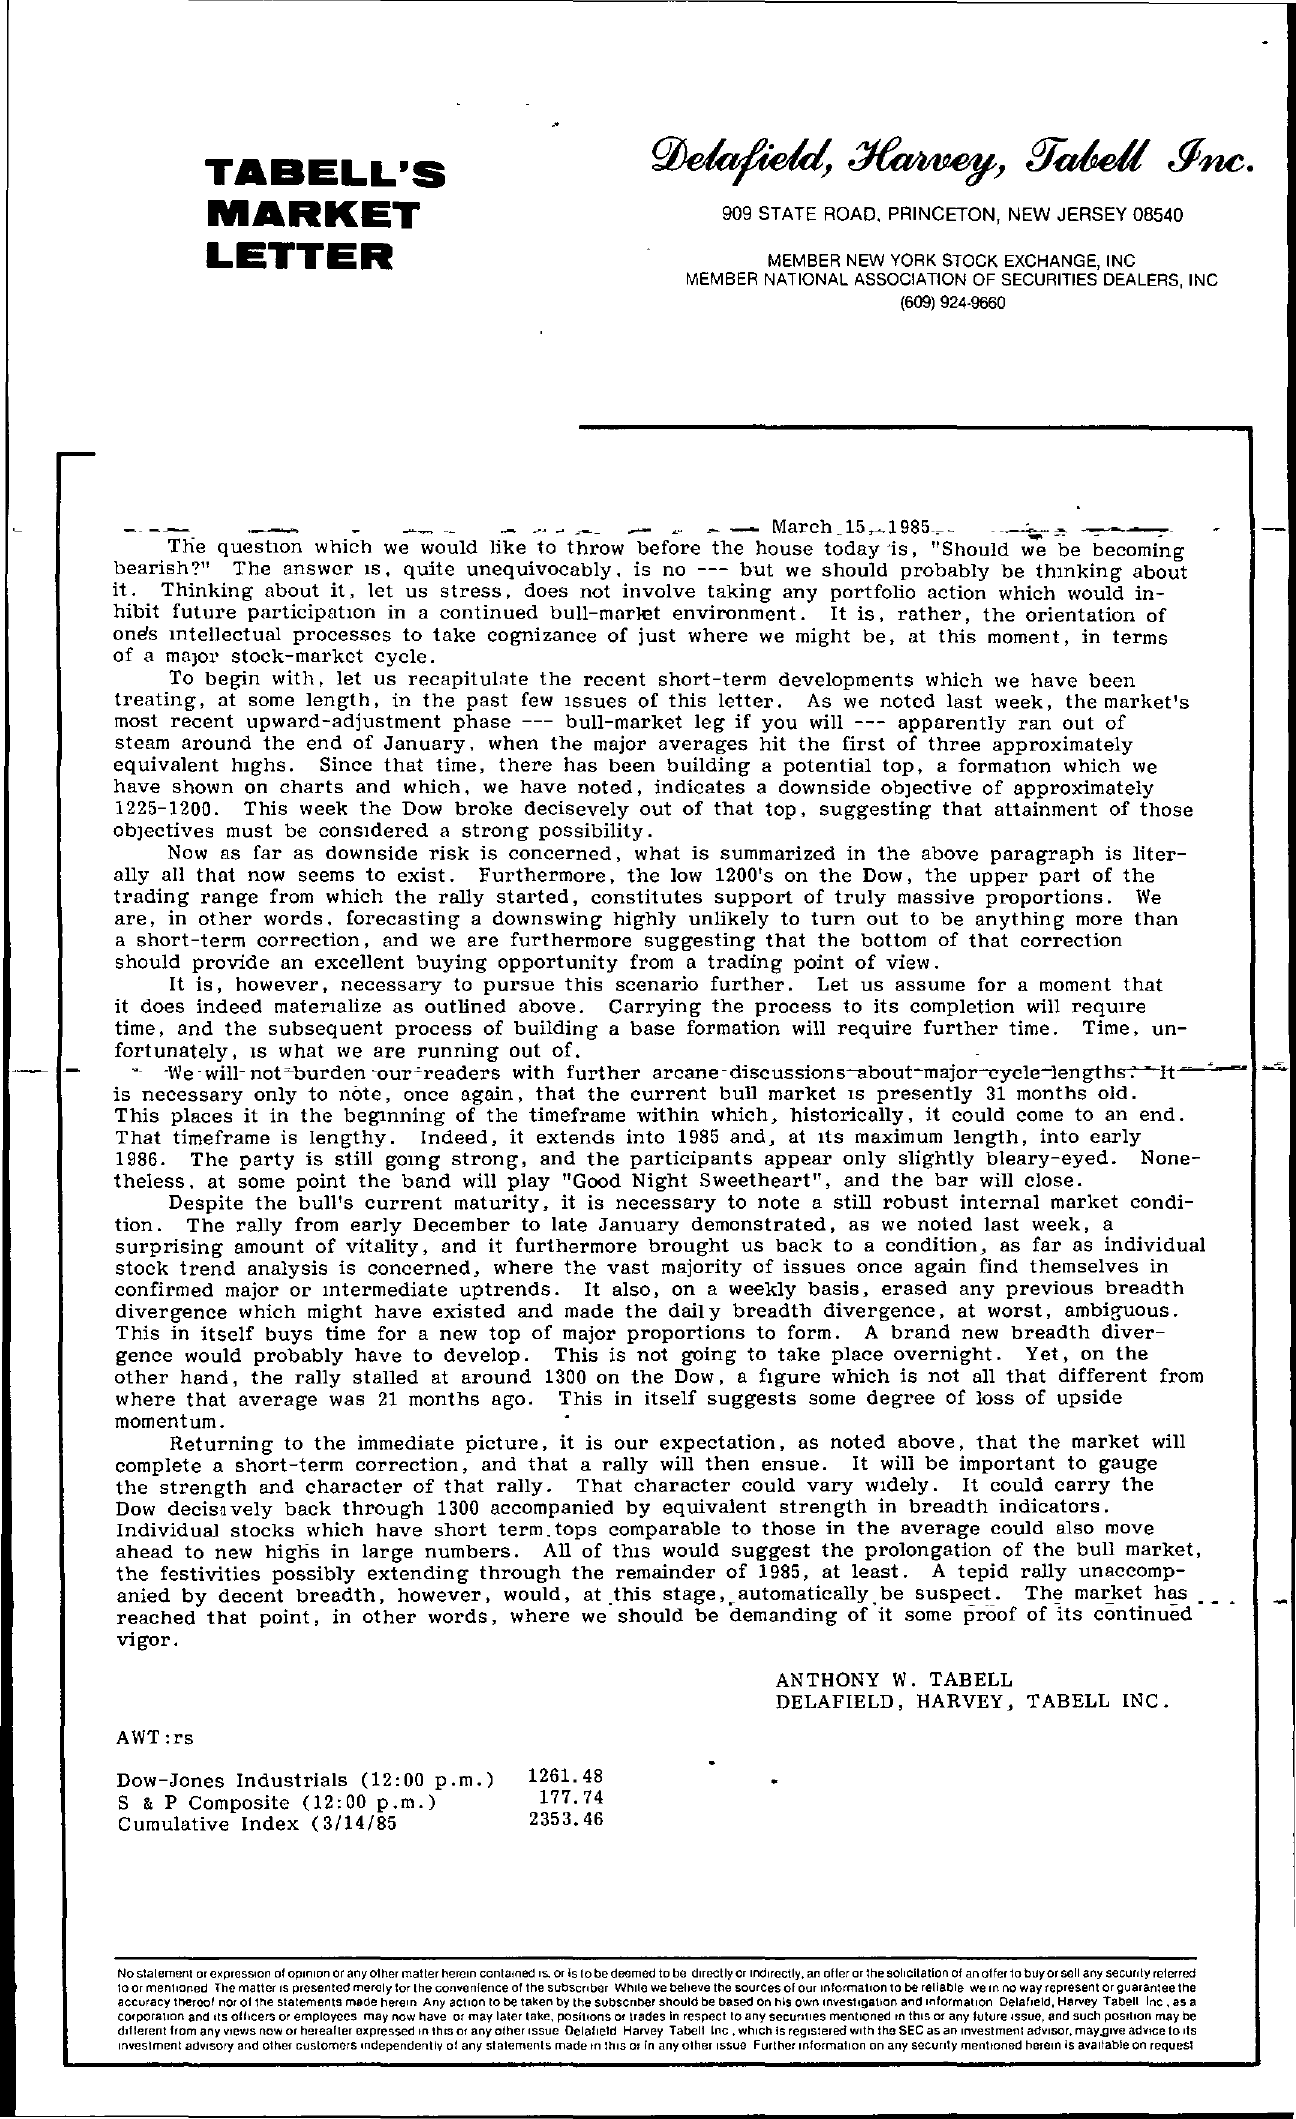 Tabell's Market Letter - March 15, 1985